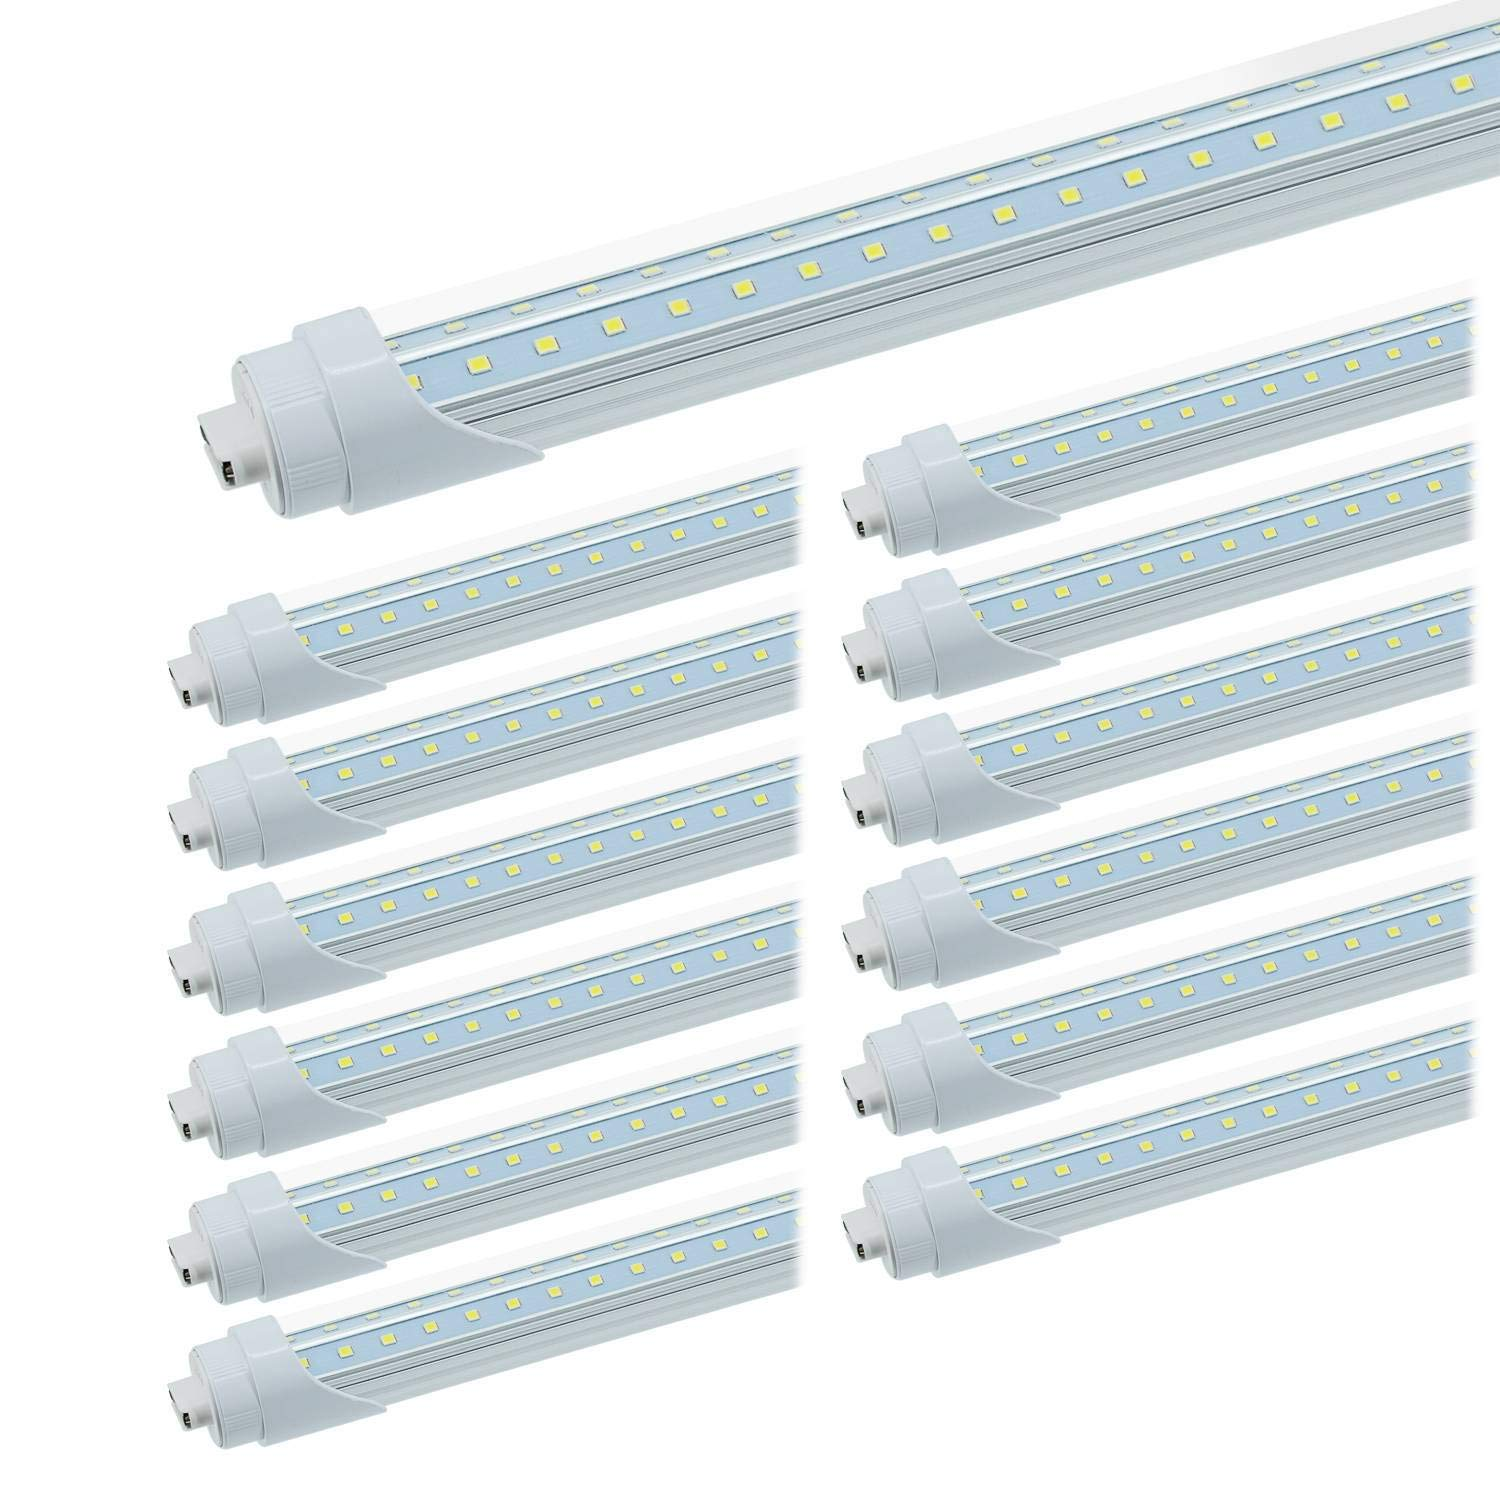 JESLED R17D/HO 8FT LED Bulbs - Rotate V shaped LED Tube Light, 50W 6000K Cool White, 6750Lumens, T8/T10/T12 Replacement, Clear Cover, 110W Equivalent F96T12/CW/HO, Ballast Bypass, Pack of 12